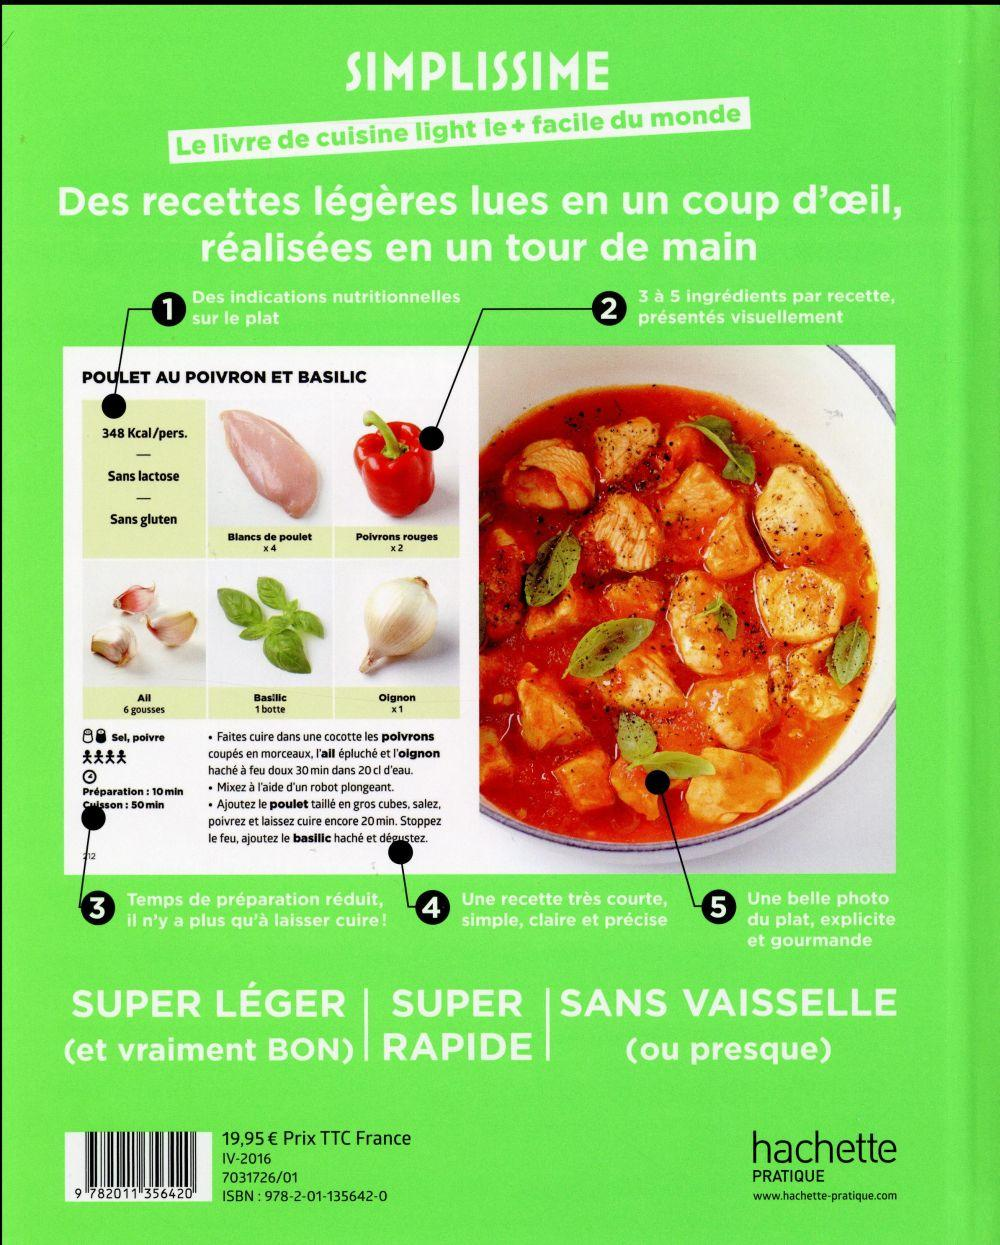 Livre simplissime light le livre de cuisine light le for La cuisine simplissime light